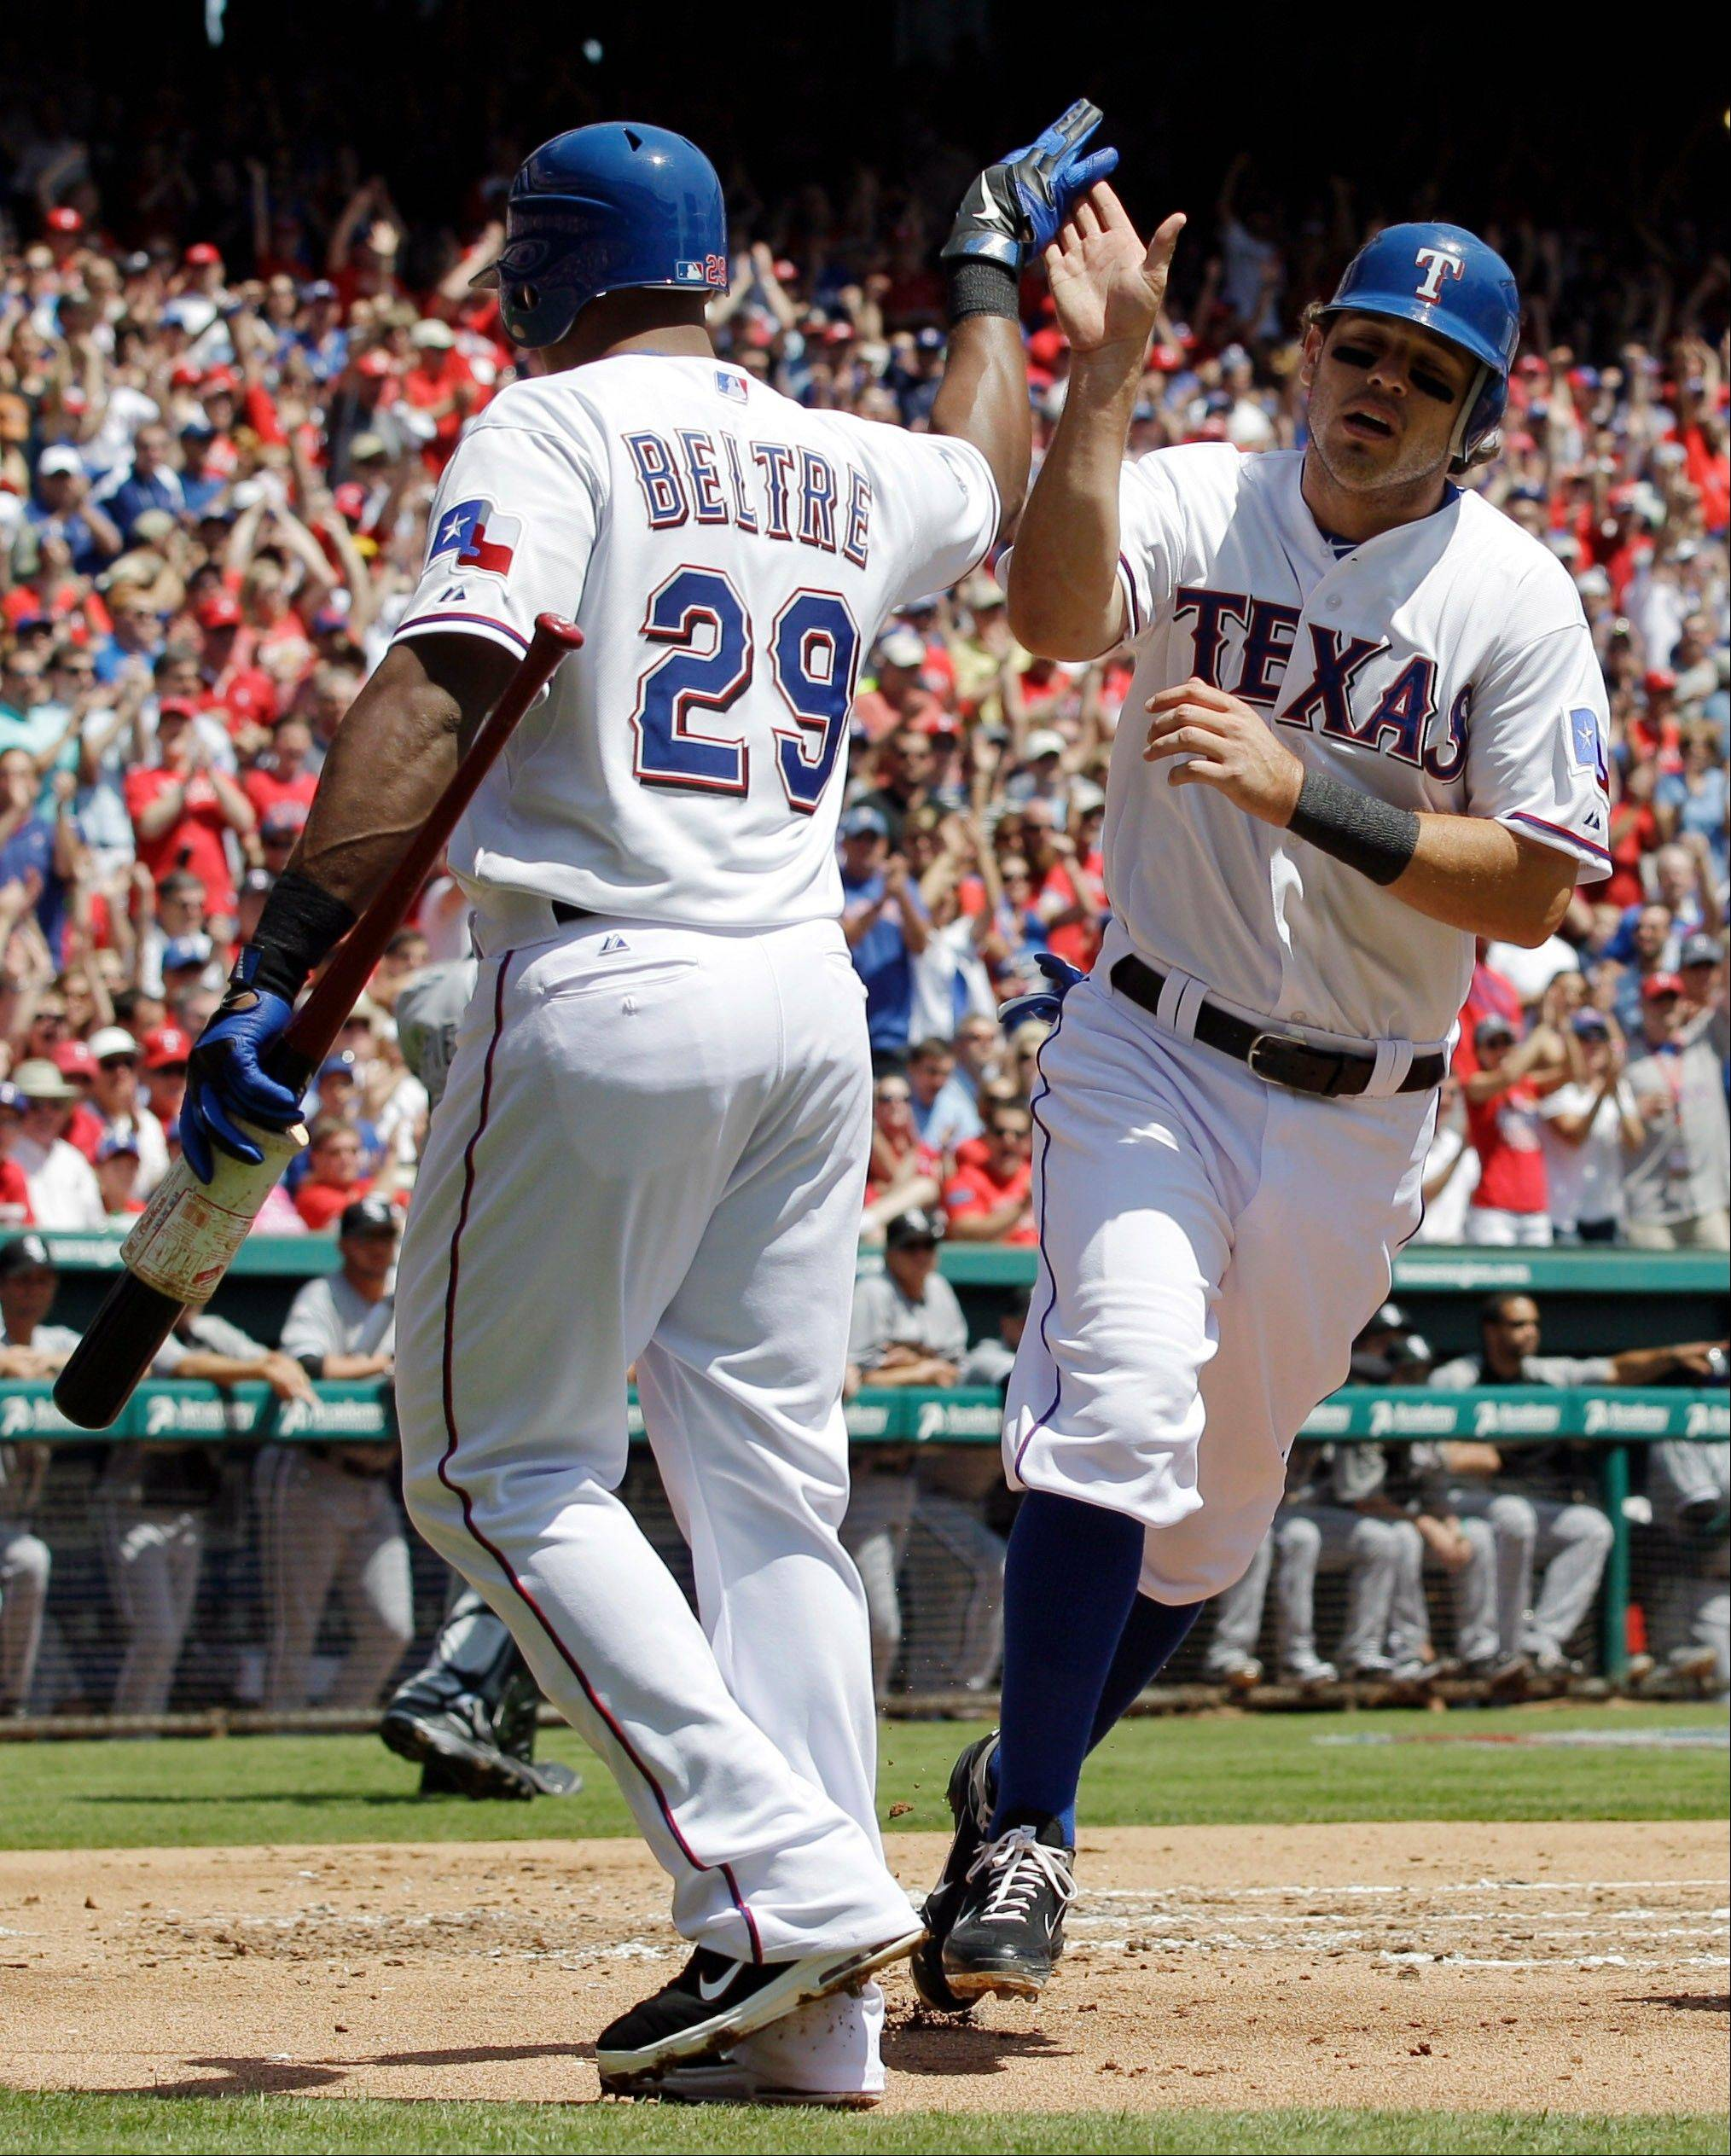 Texas Rangers' Adrian Beltre (29) congratulates Ian Kinsler who scored on a sacrifice fly by Josh Hamilton against the Chicago White Sox during the first inning of a baseball game Friday, April 6, 2012 in Arlington, Texas.